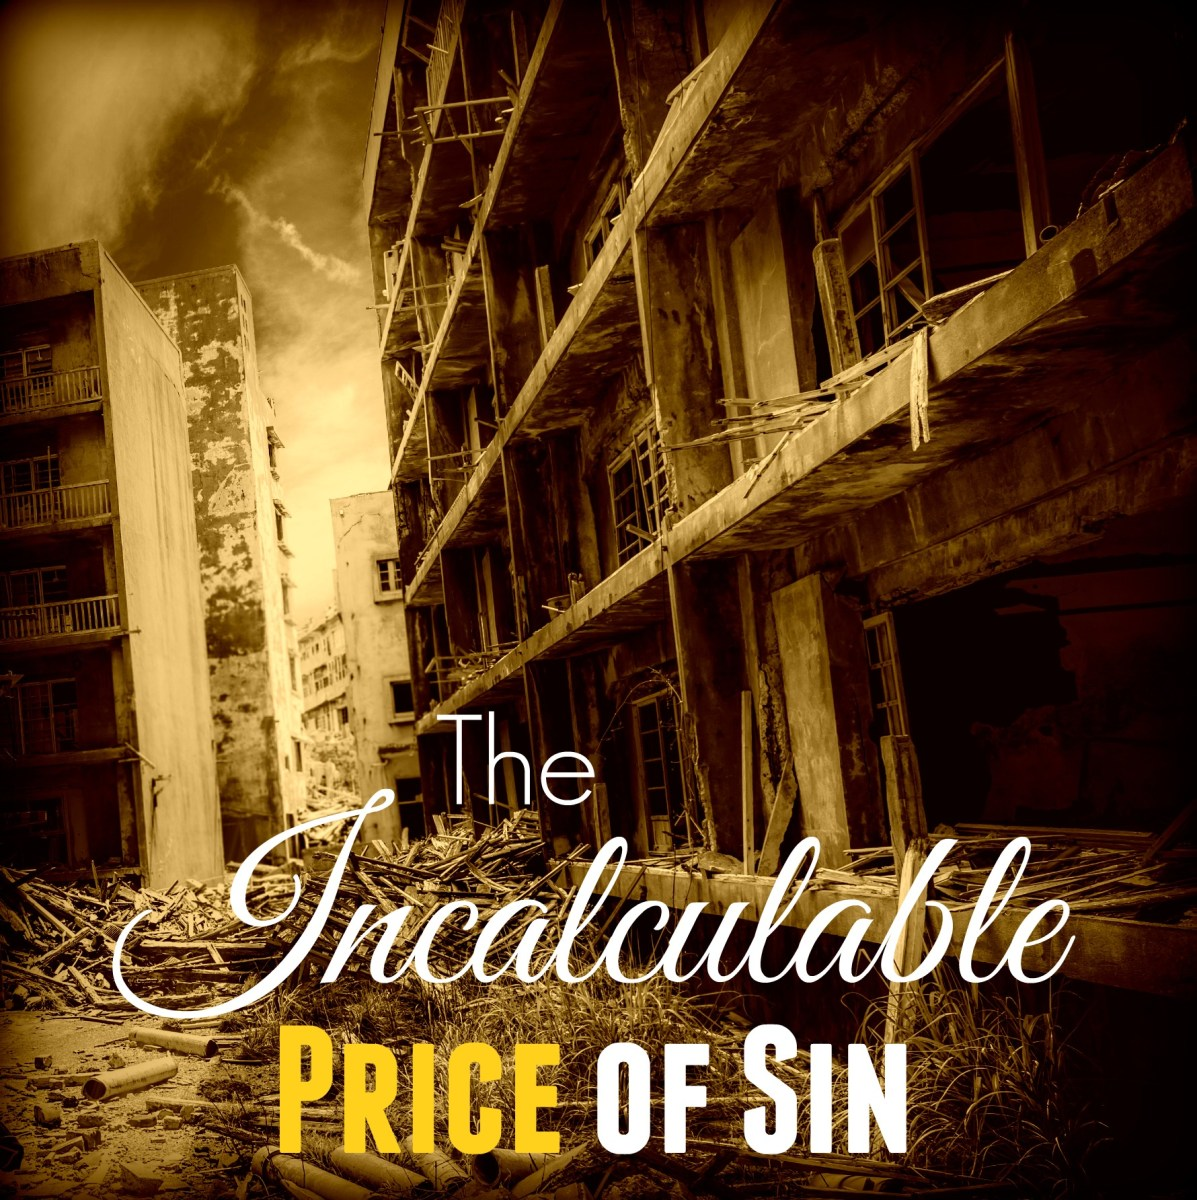 The Incalculable Price of Sin